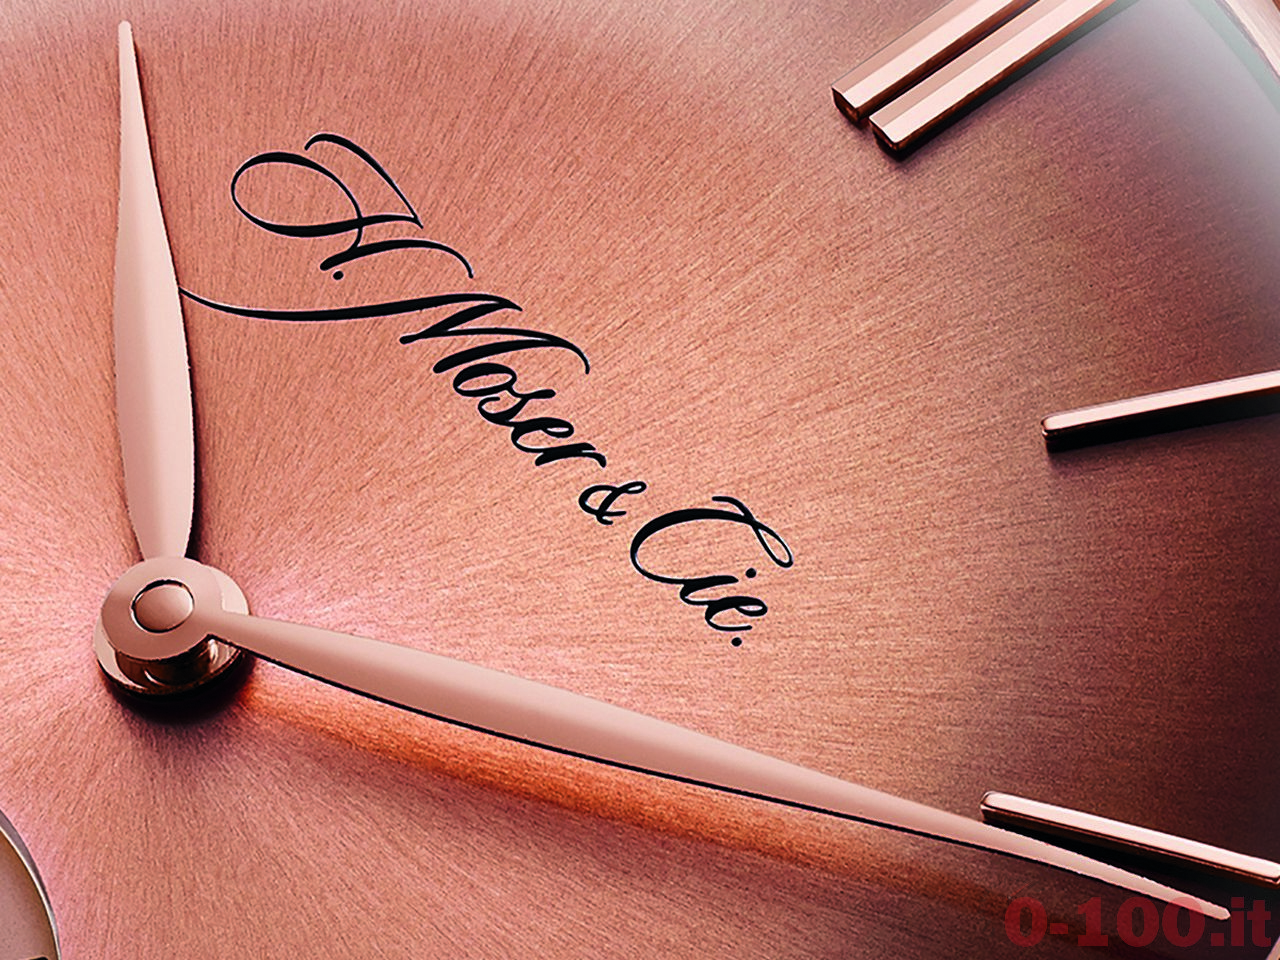 Baselworld-2014-H. Moser & Cie Venturer Small Seconds _0-1004